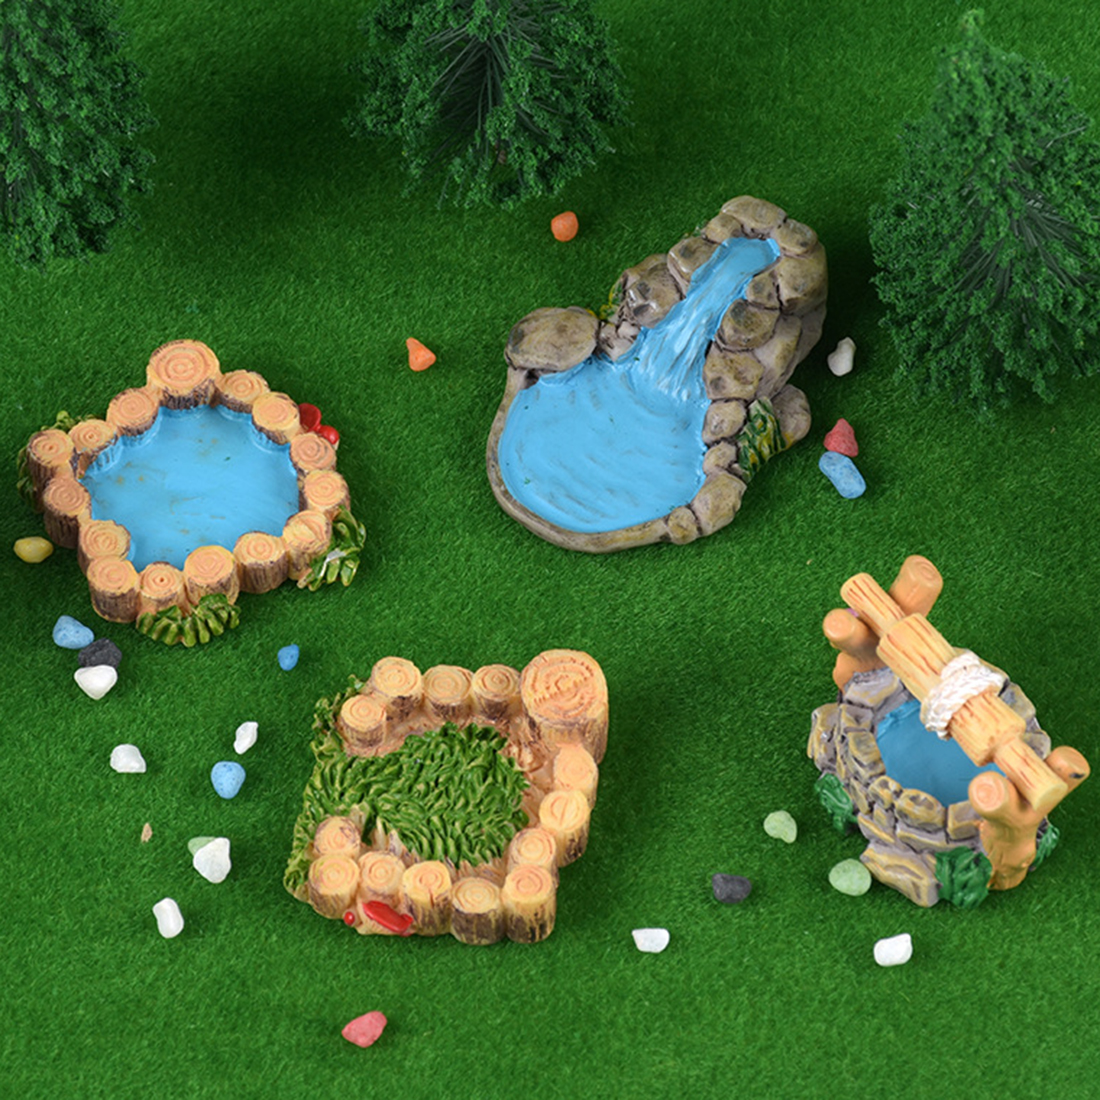 Retro Well Miniature Fairy  +Timber Pile Grass+Pool+Mountain Water Little  Fairy Garden Decor Landscape For DIY Sand Table